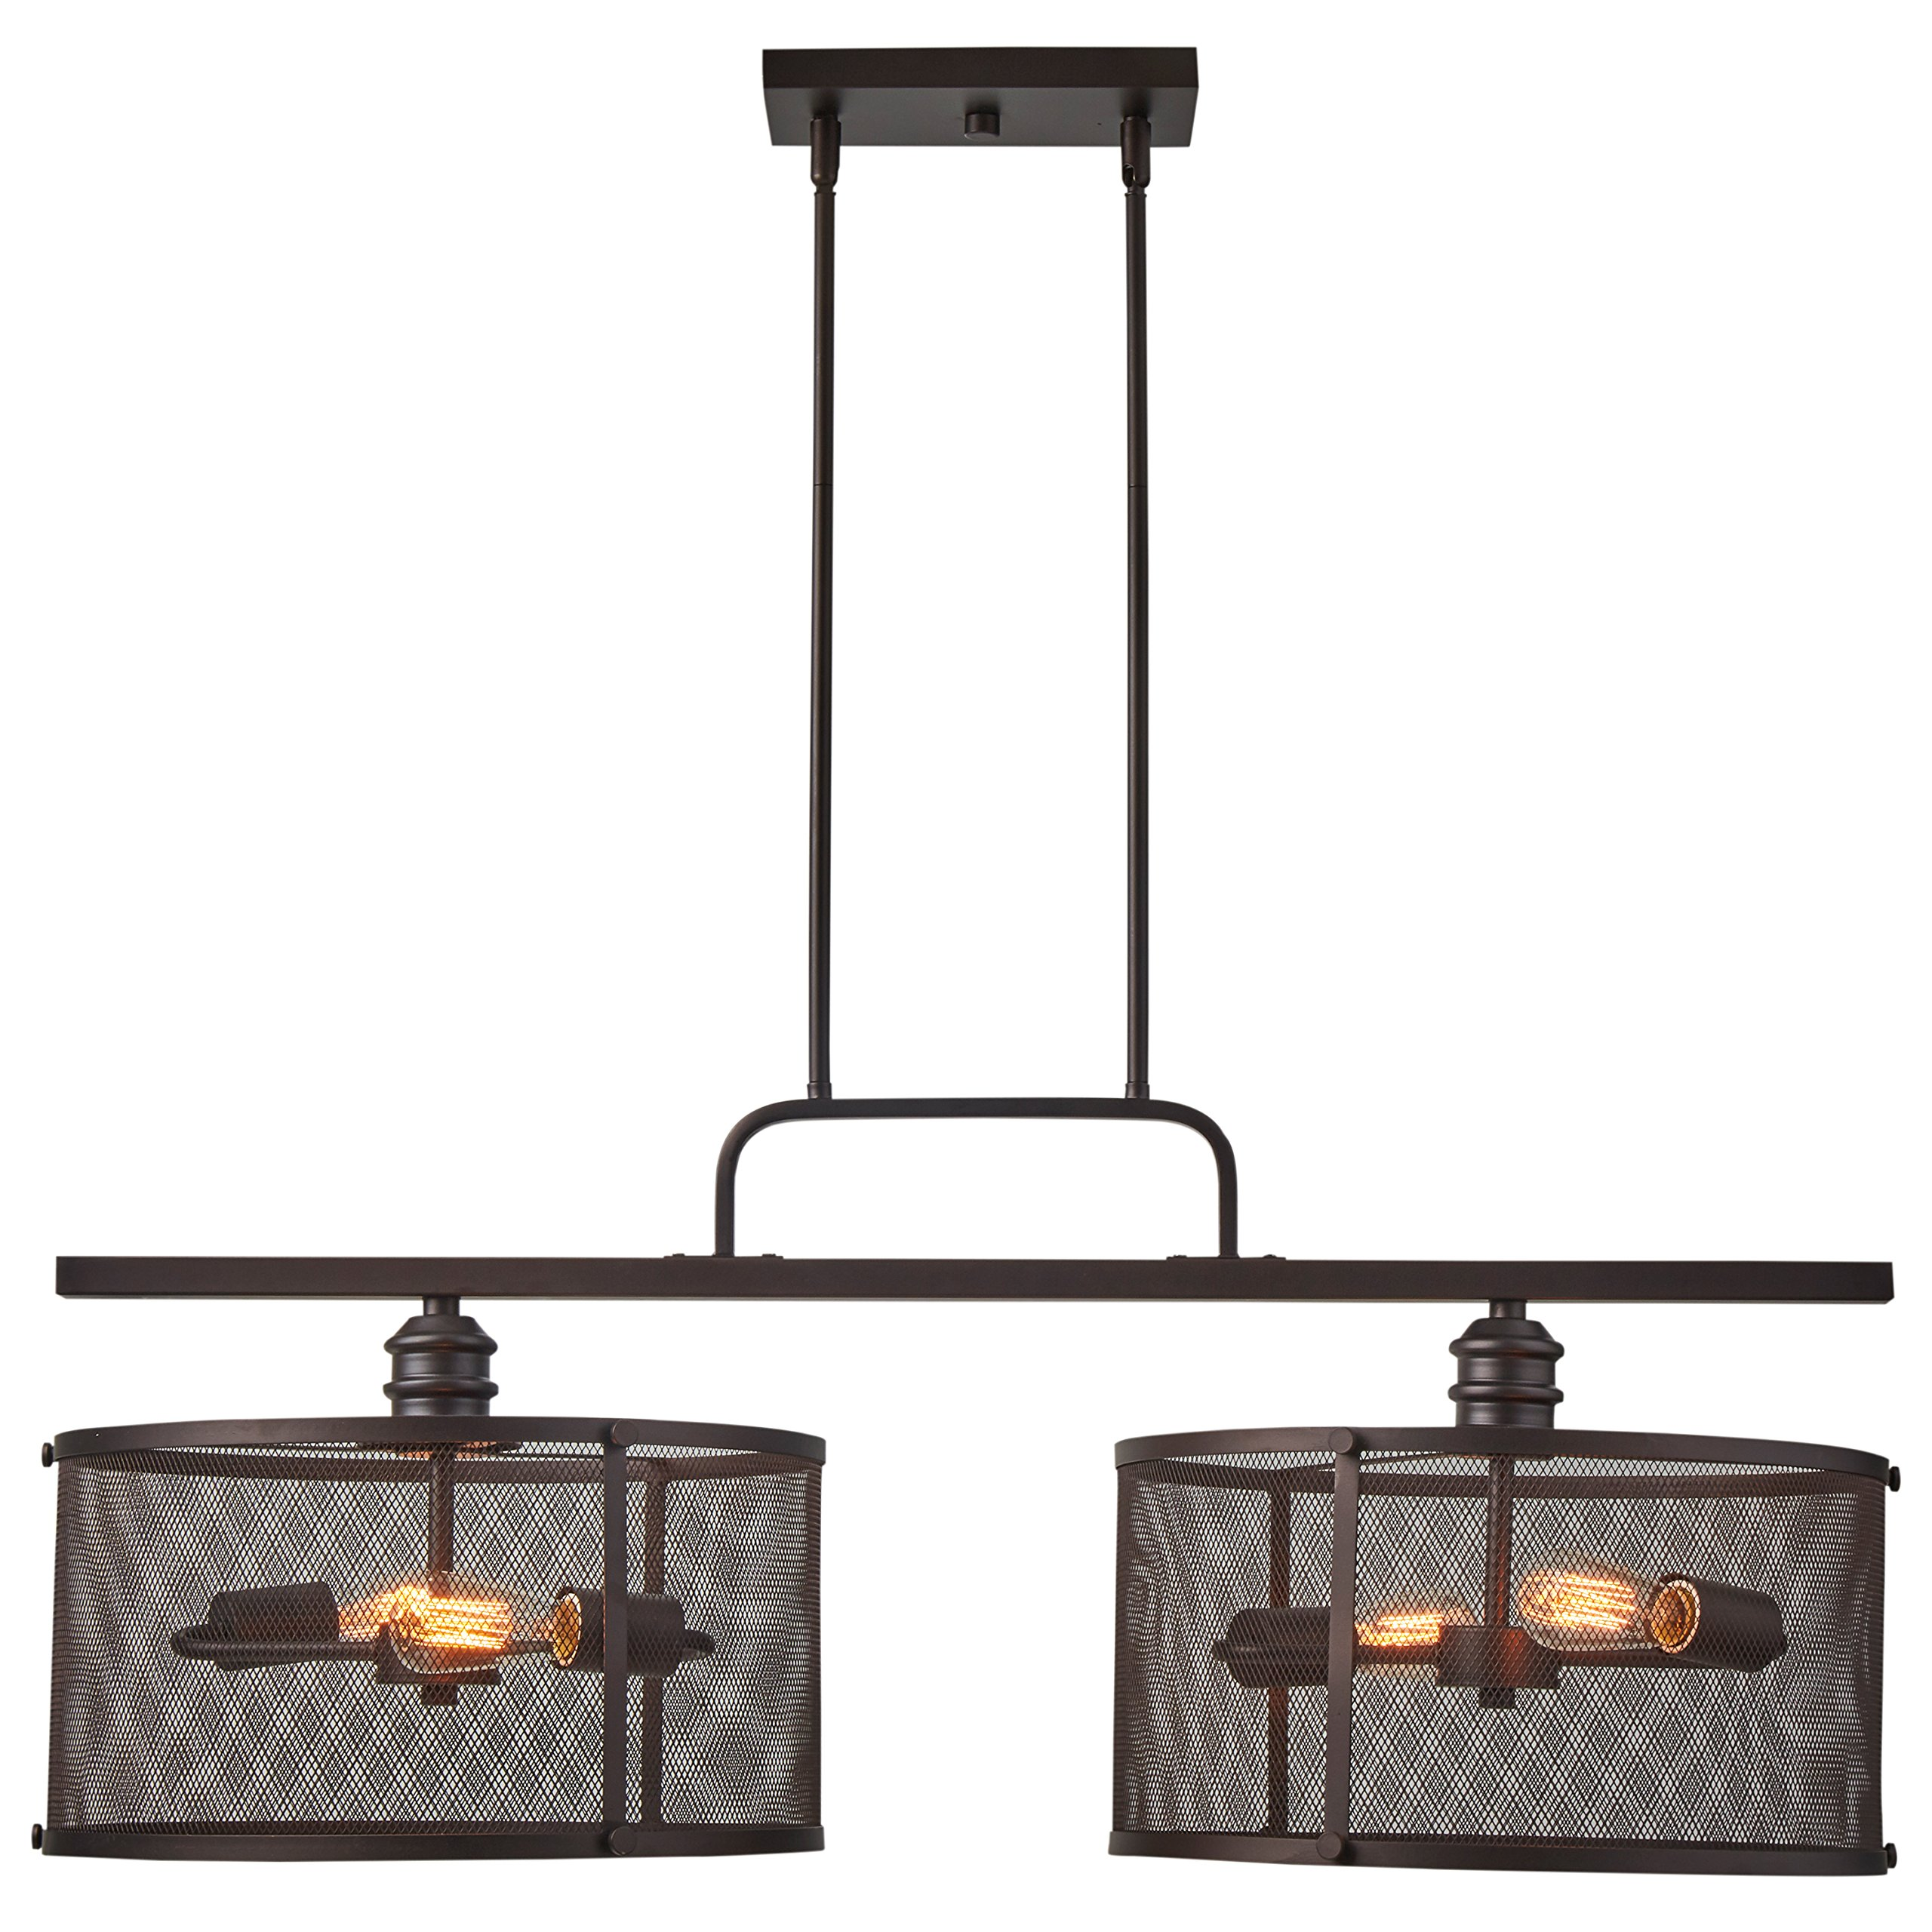 Stone & Beam Hobbs Double Pendant With Bulbs, 24'' to 66''H, Oil-Rubbed Bronze